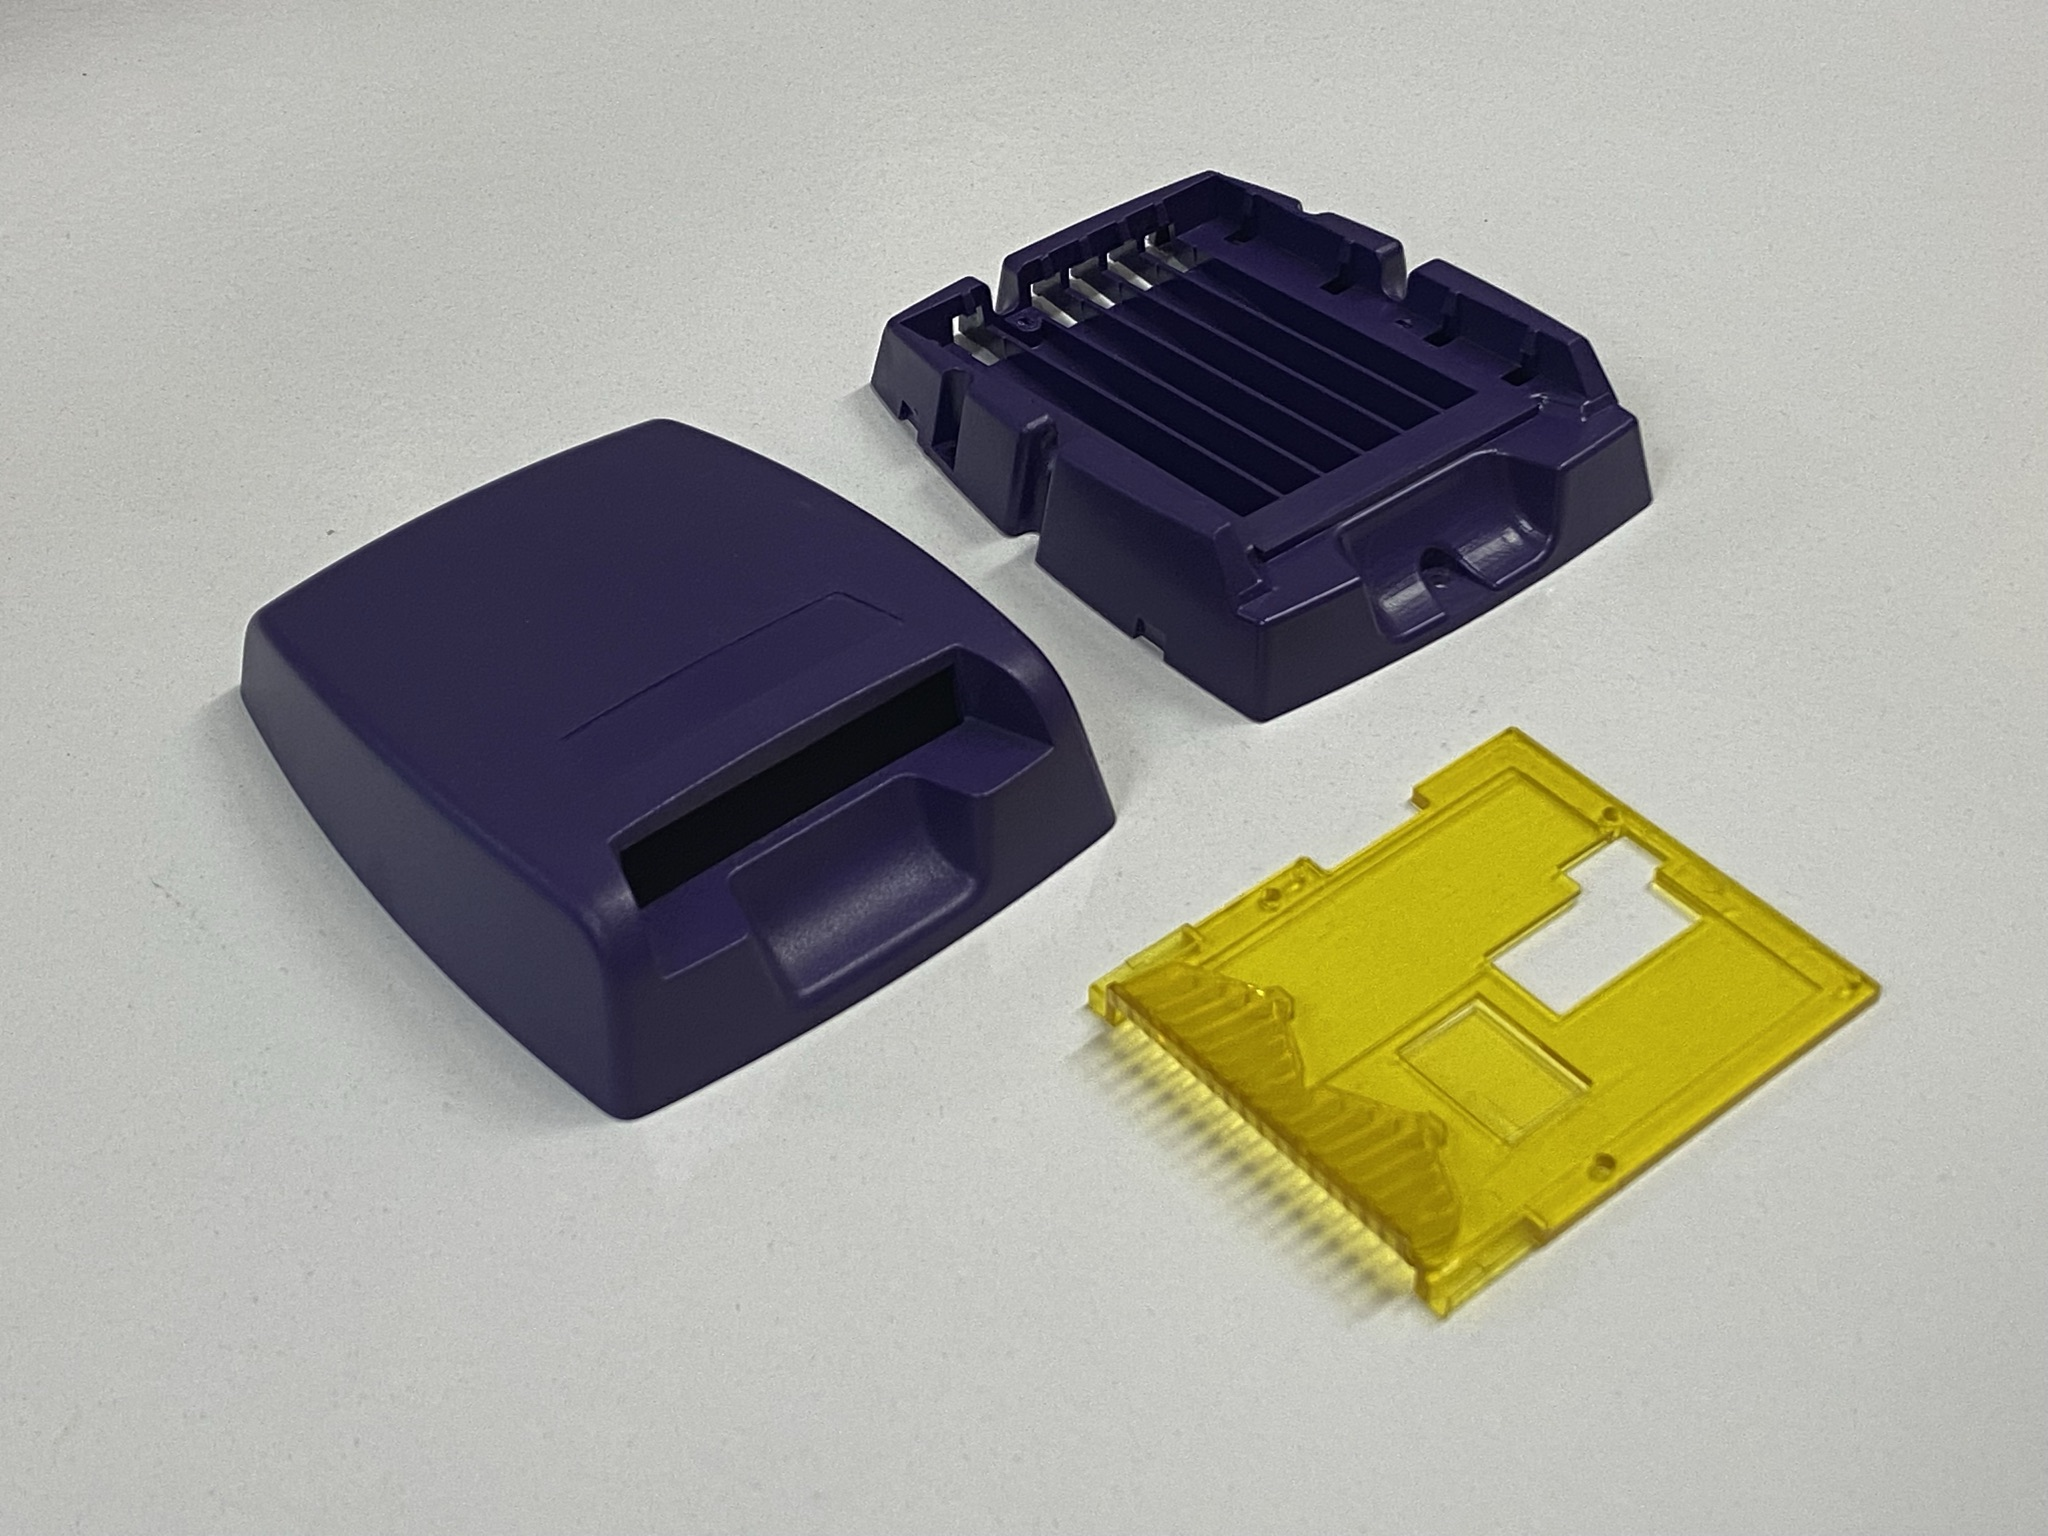 Top, base and PCB holder mouldings